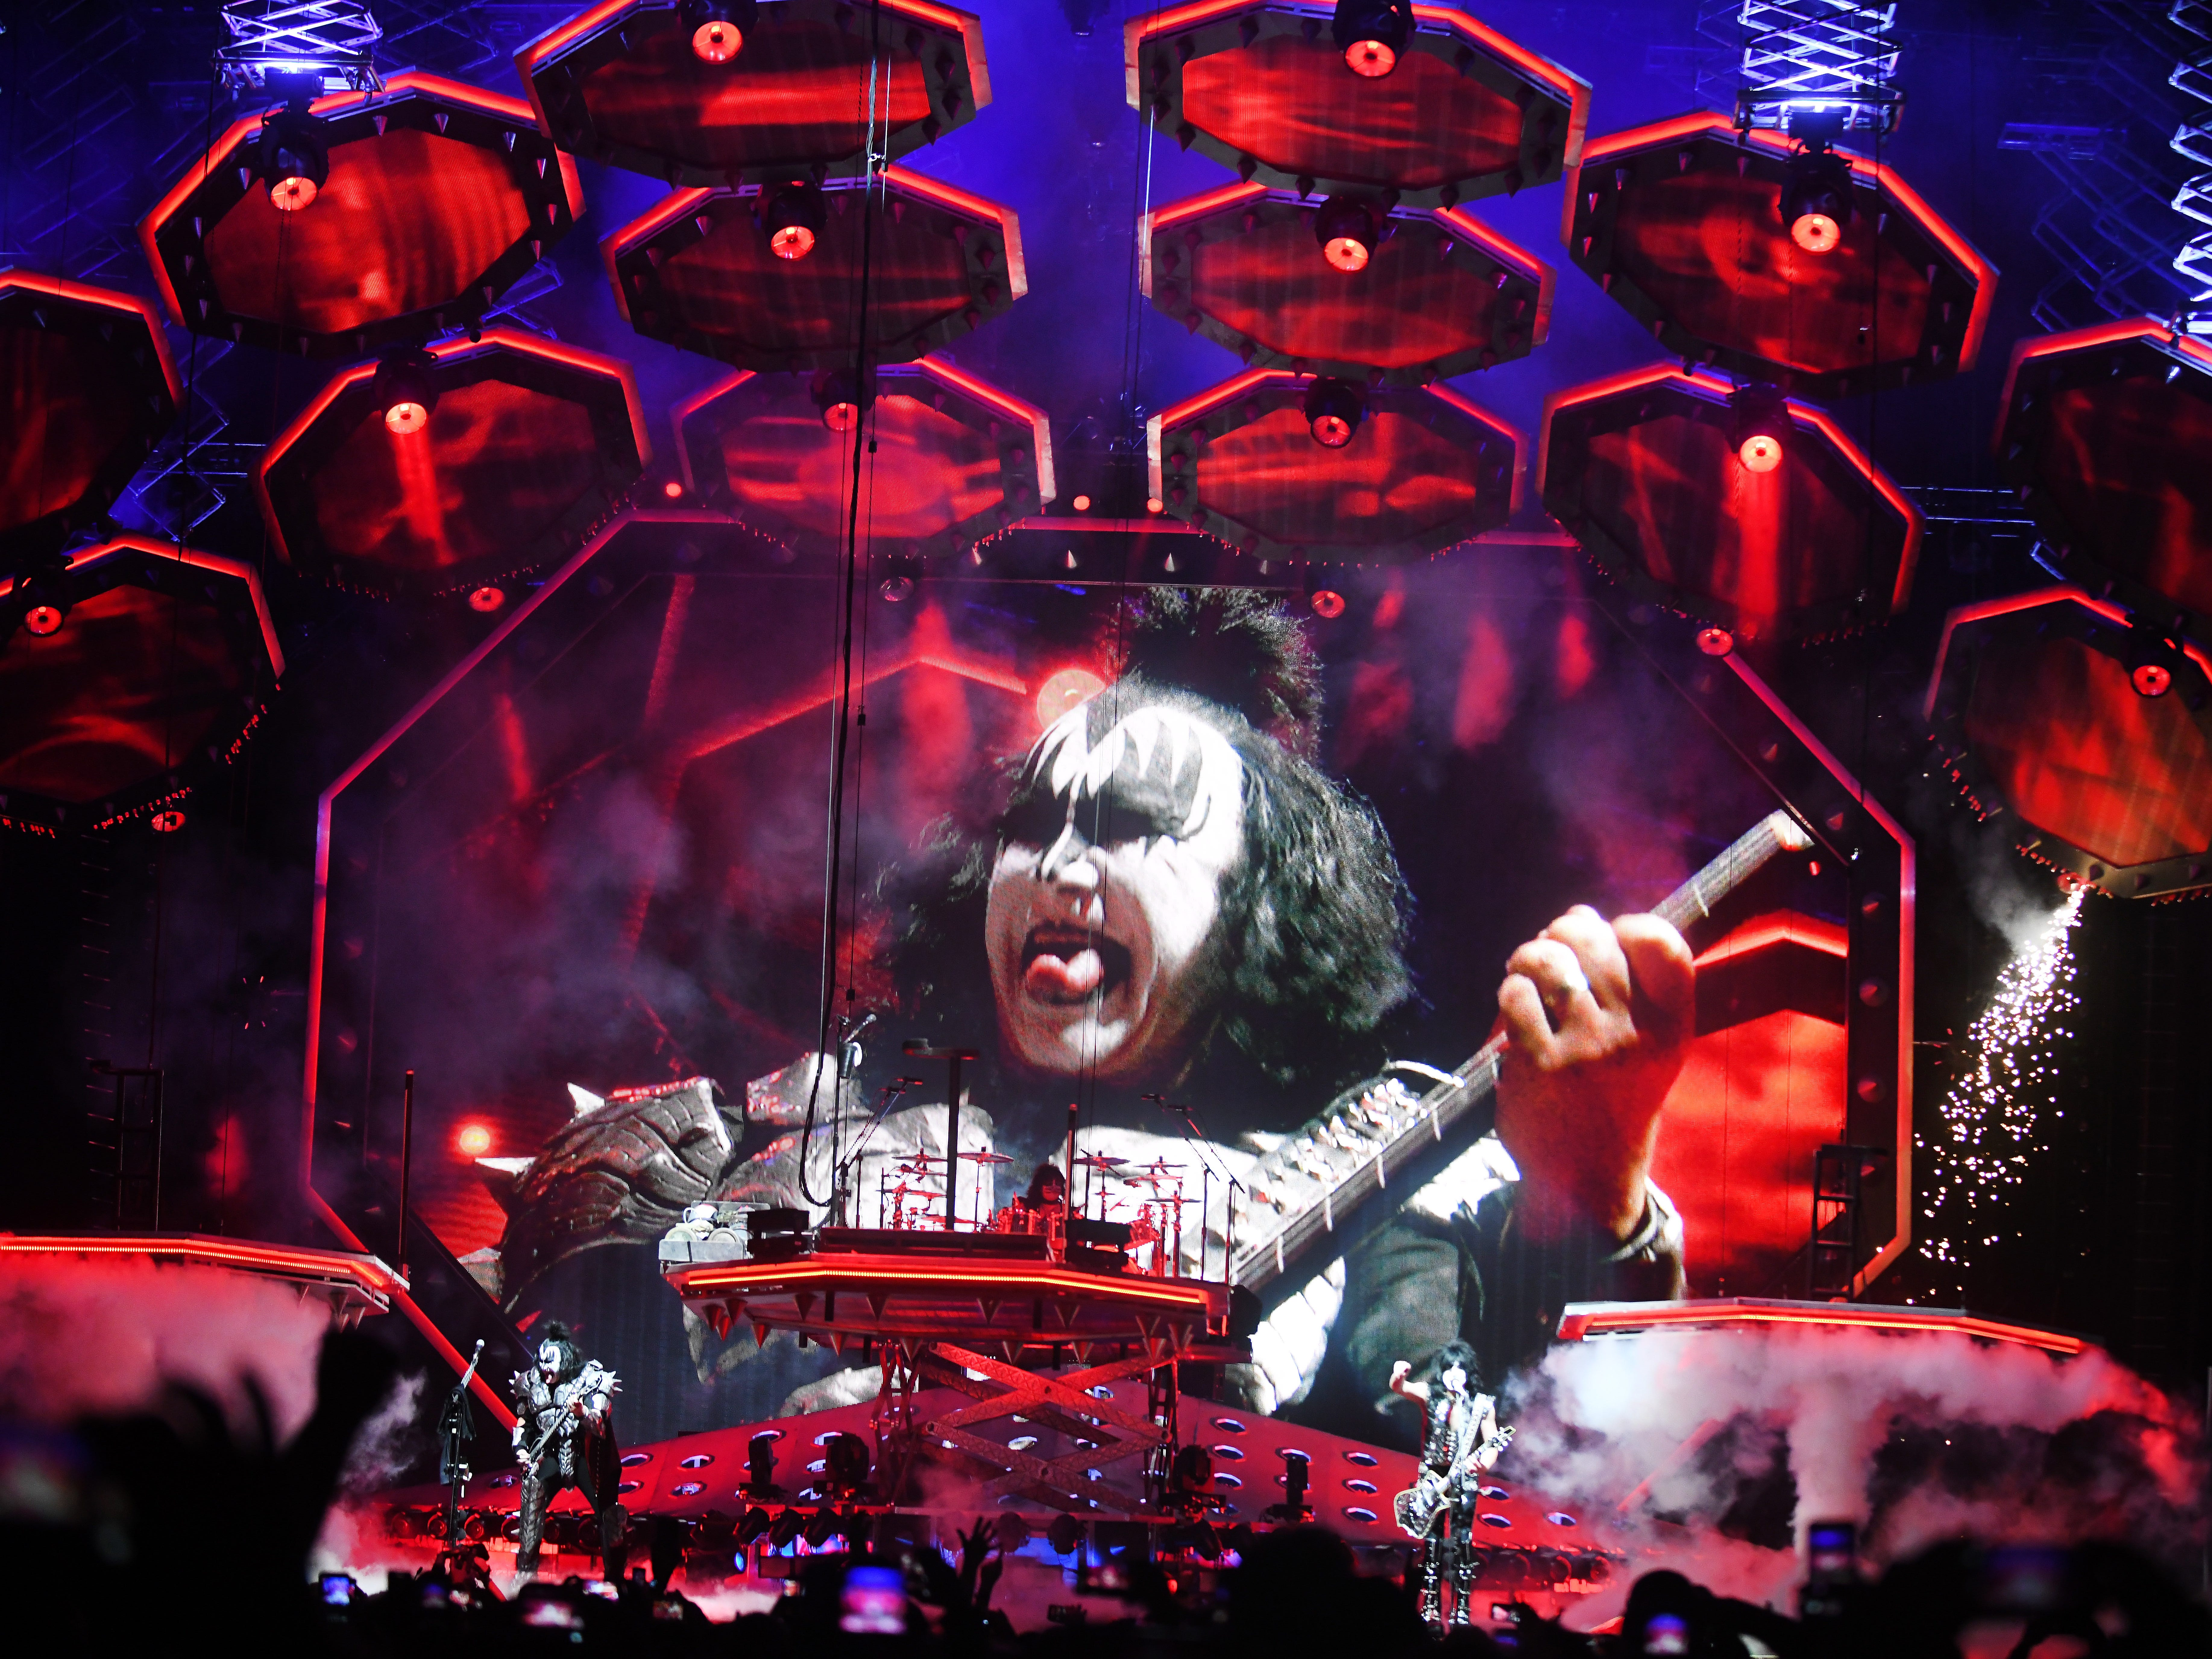 KISS 'End of the Road' tour with original members Gene Simmons on bass and Paul Stanley lead vocals along with Tommy Thayer on lead guitar and Eric Singer on drums play Little Caesars Arena in Detroit, Michigan on March 13, 2019.